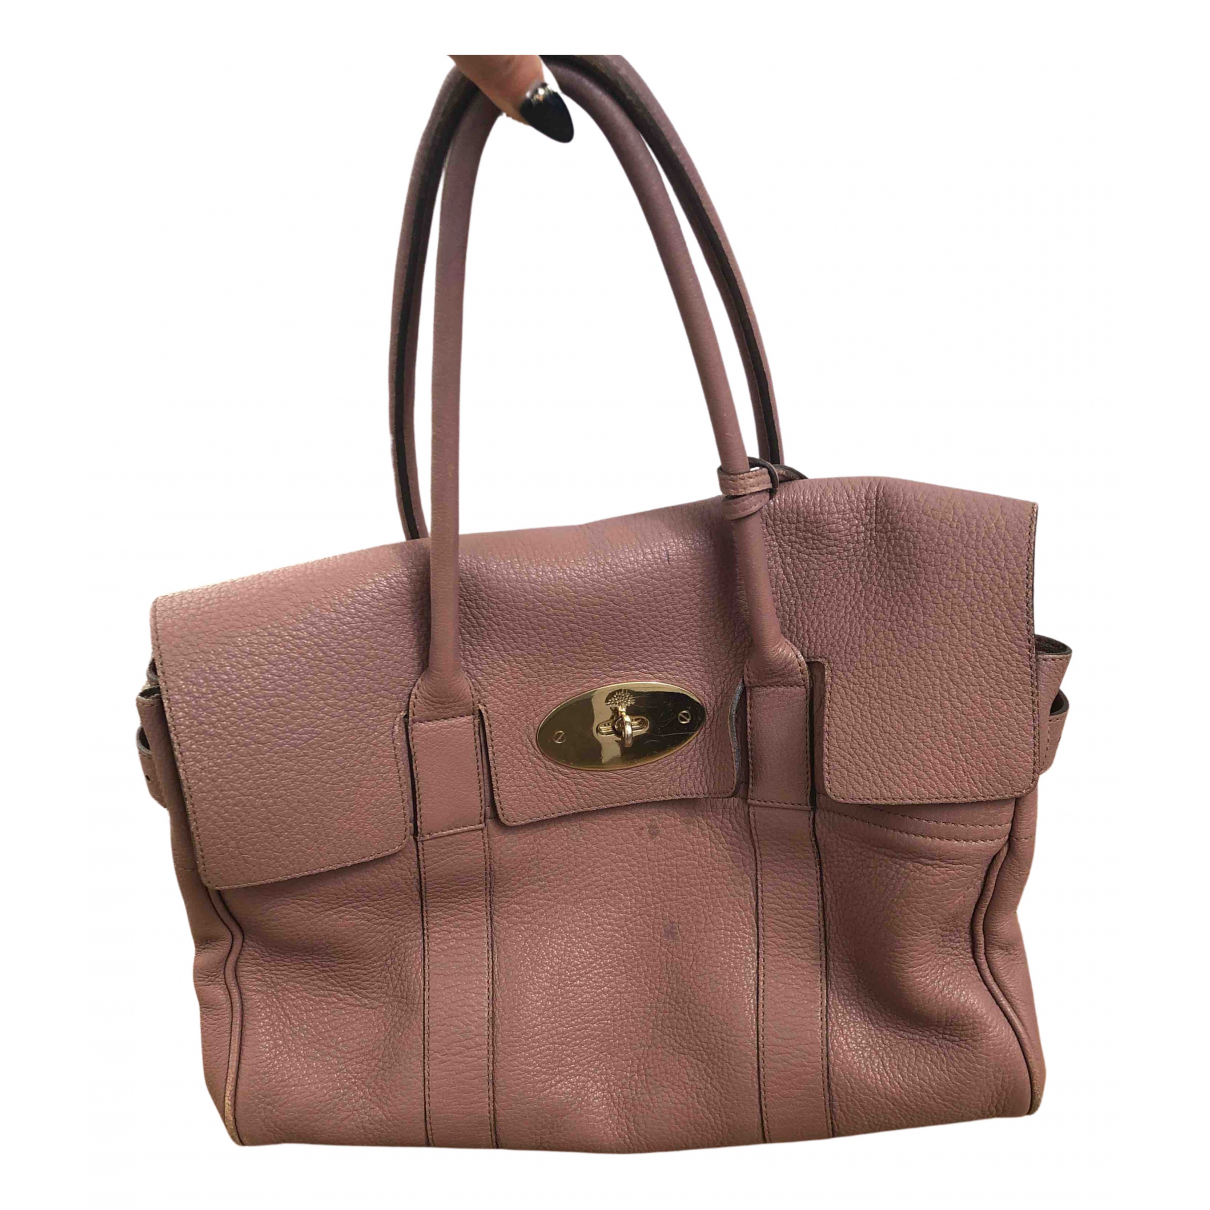 Mulberry N Pink Leather handbag for Women N